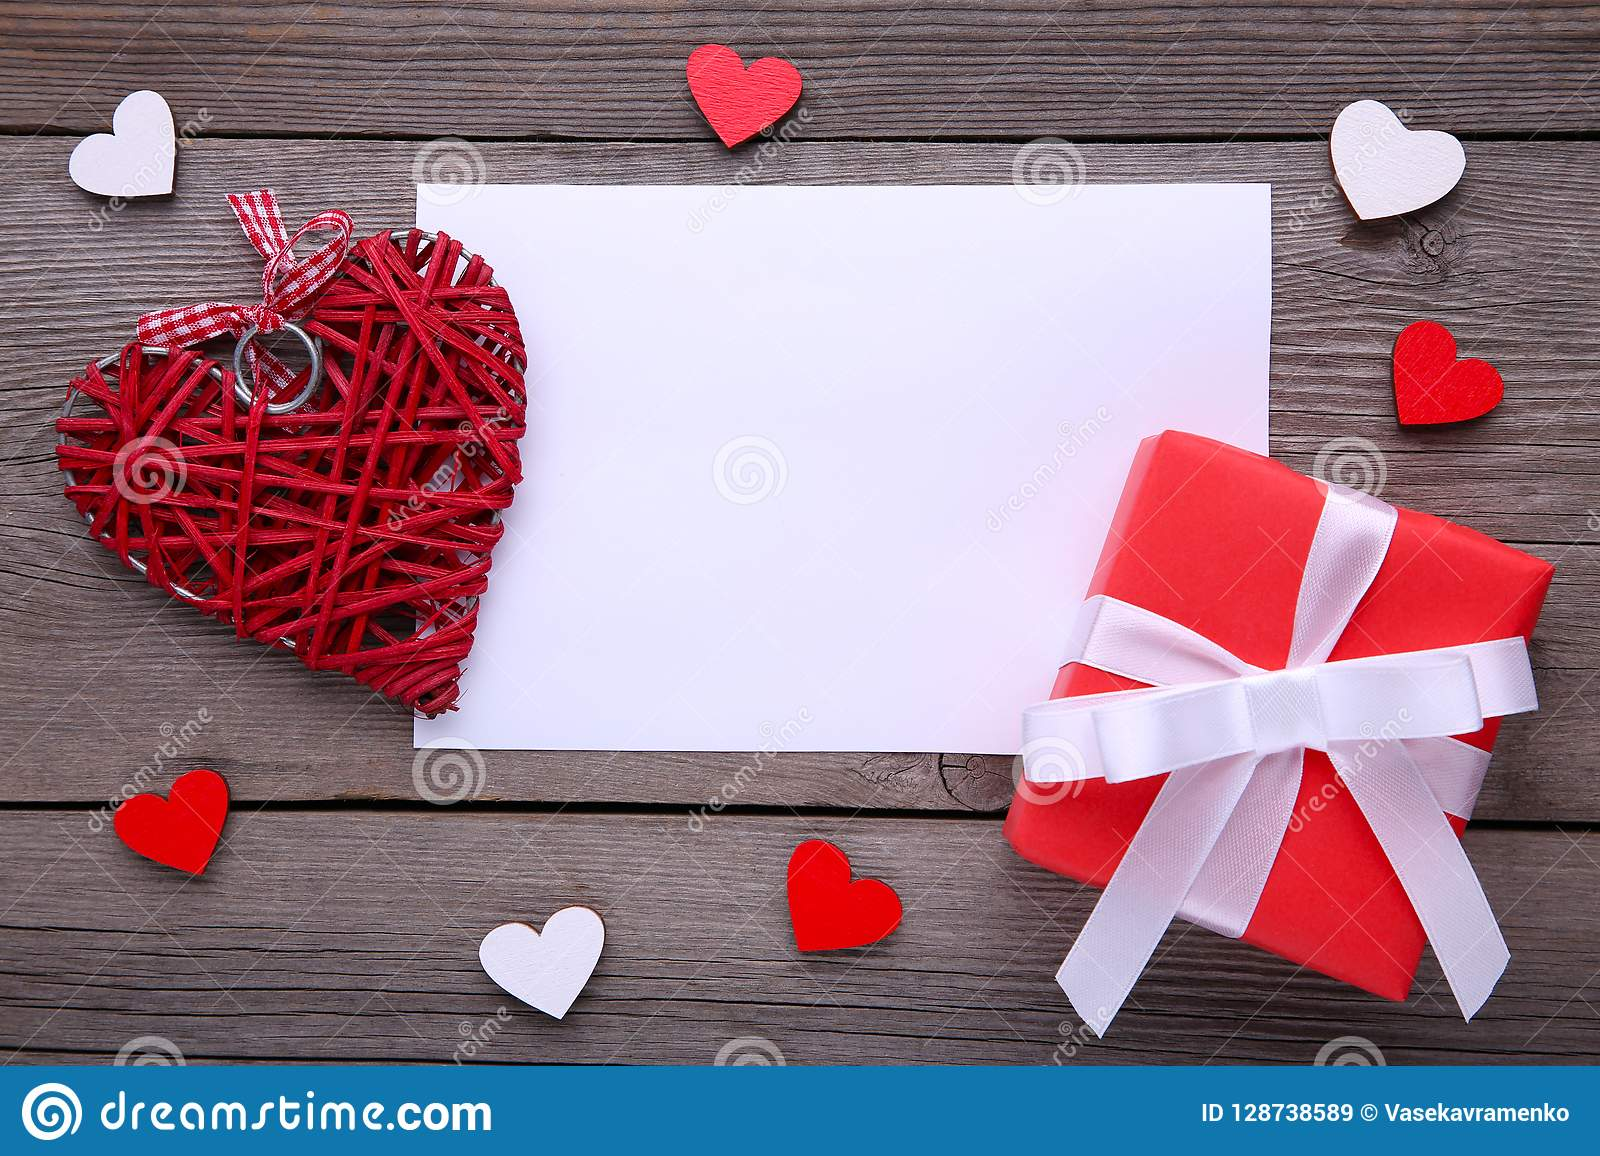 Red gift box with hearts on grey background